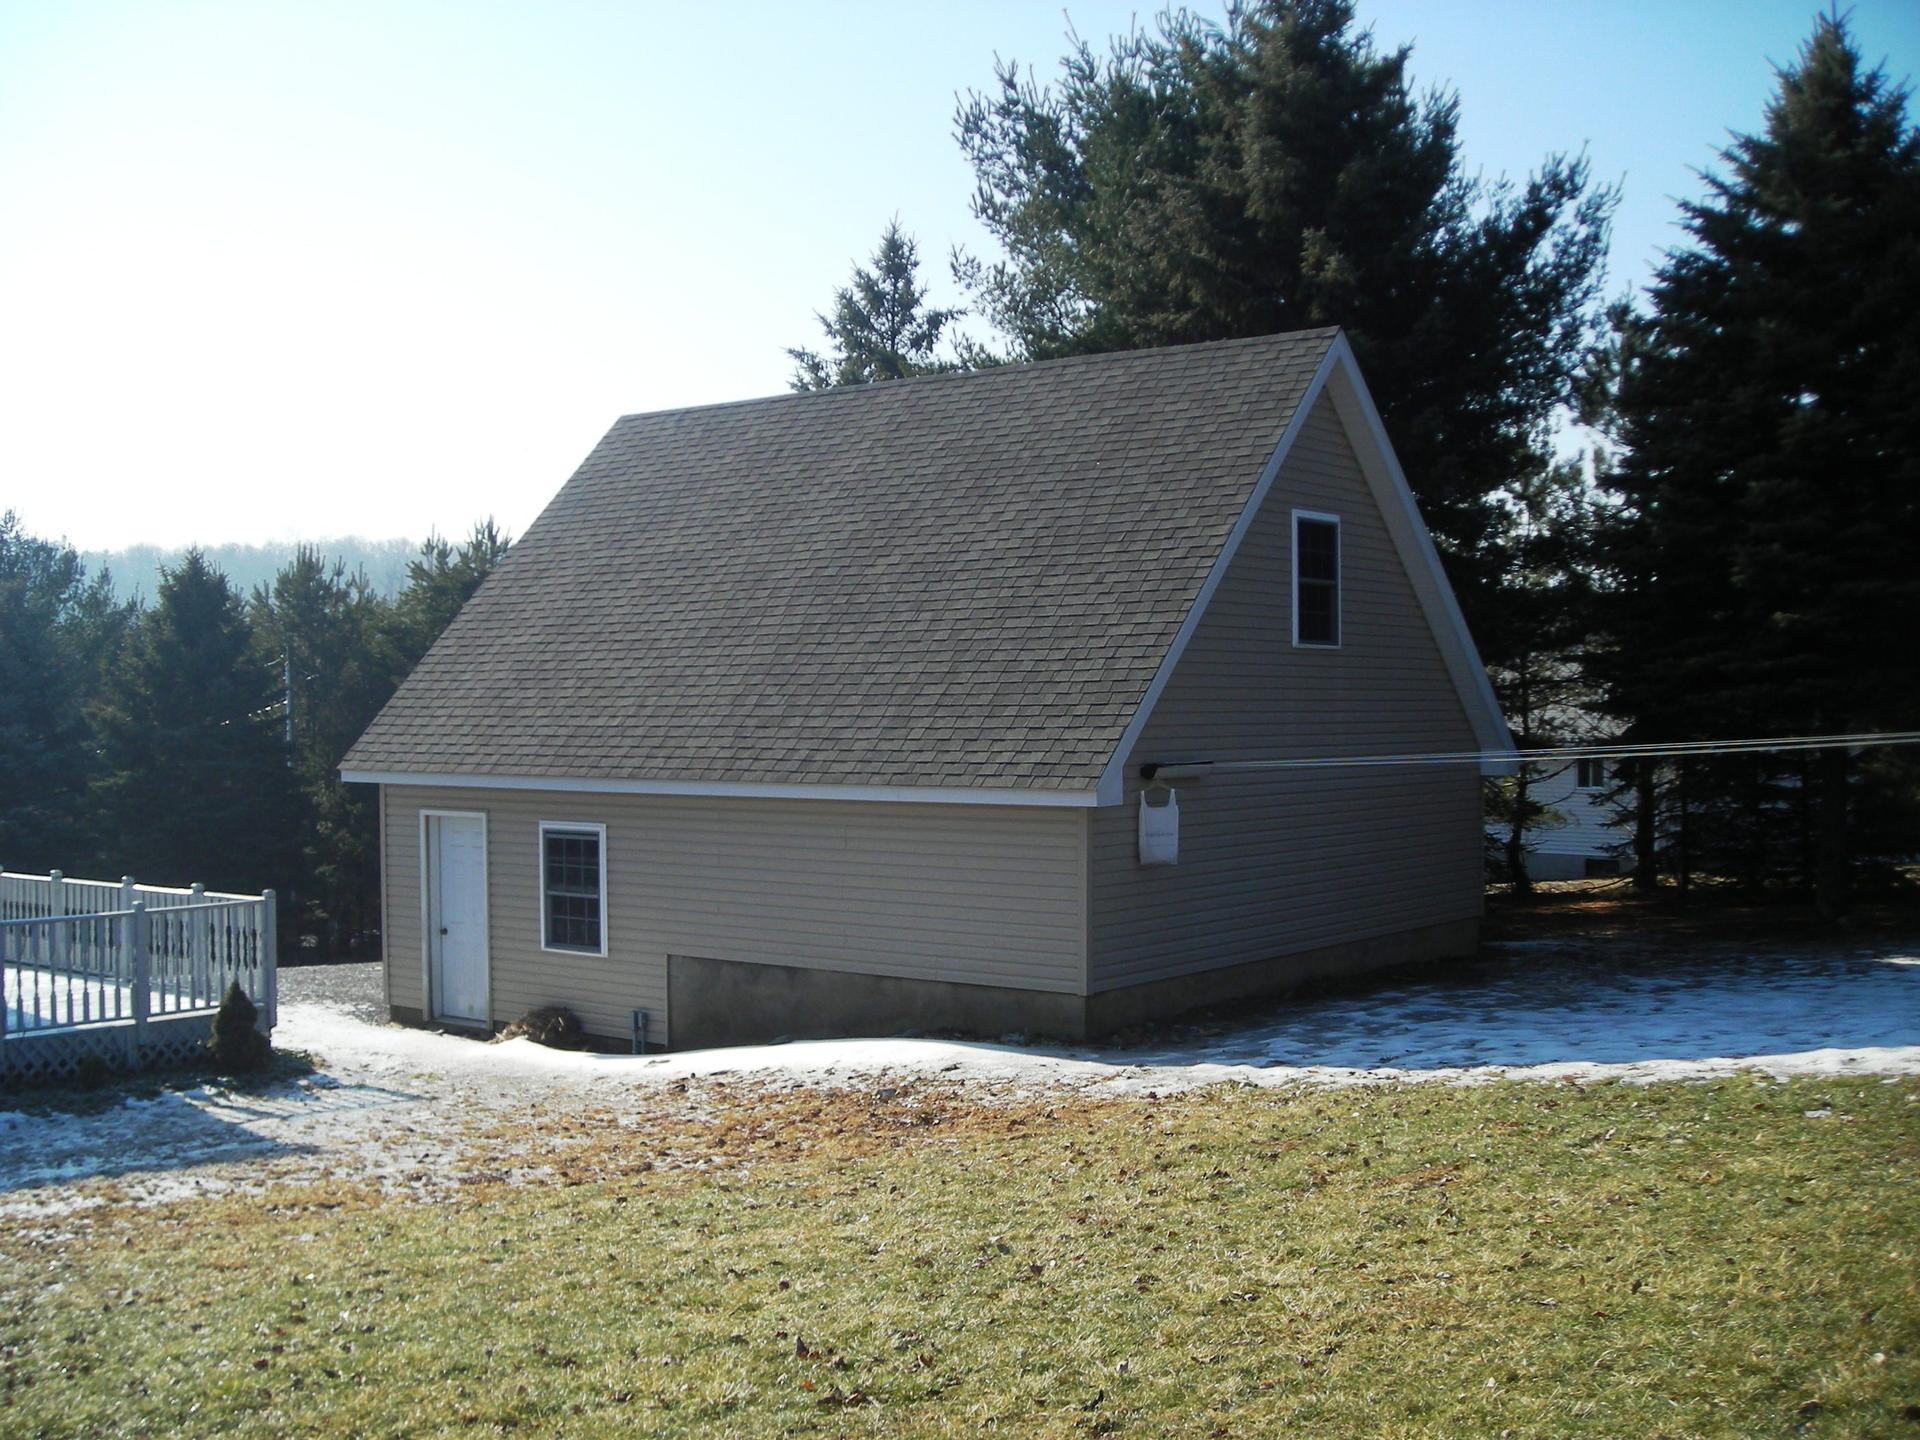 Garage project five 20 x 44 2 story garage pocono for Modular homes with garages